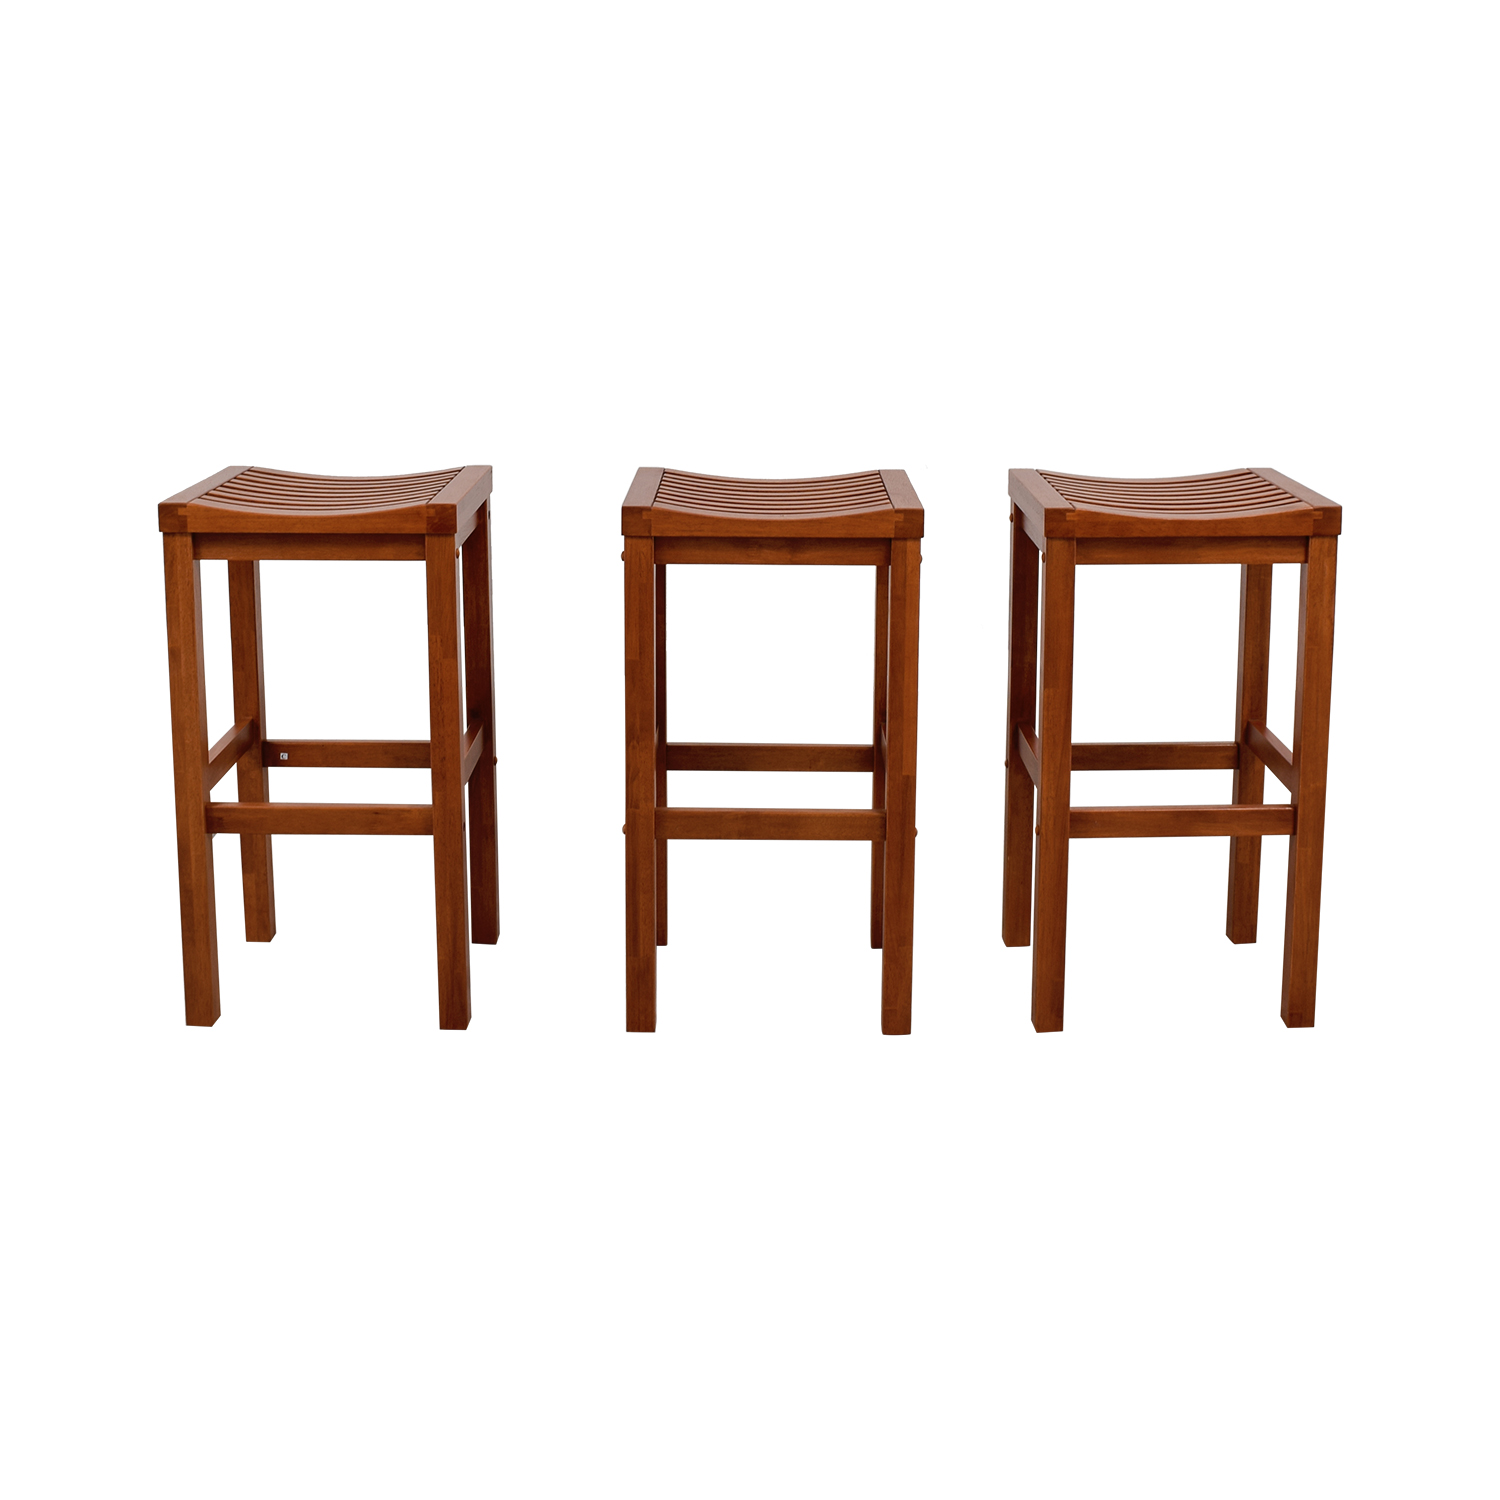 Styles Of Chairs 90 Off Home Styles Home Styles Oak Finish Bar Stool Chairs